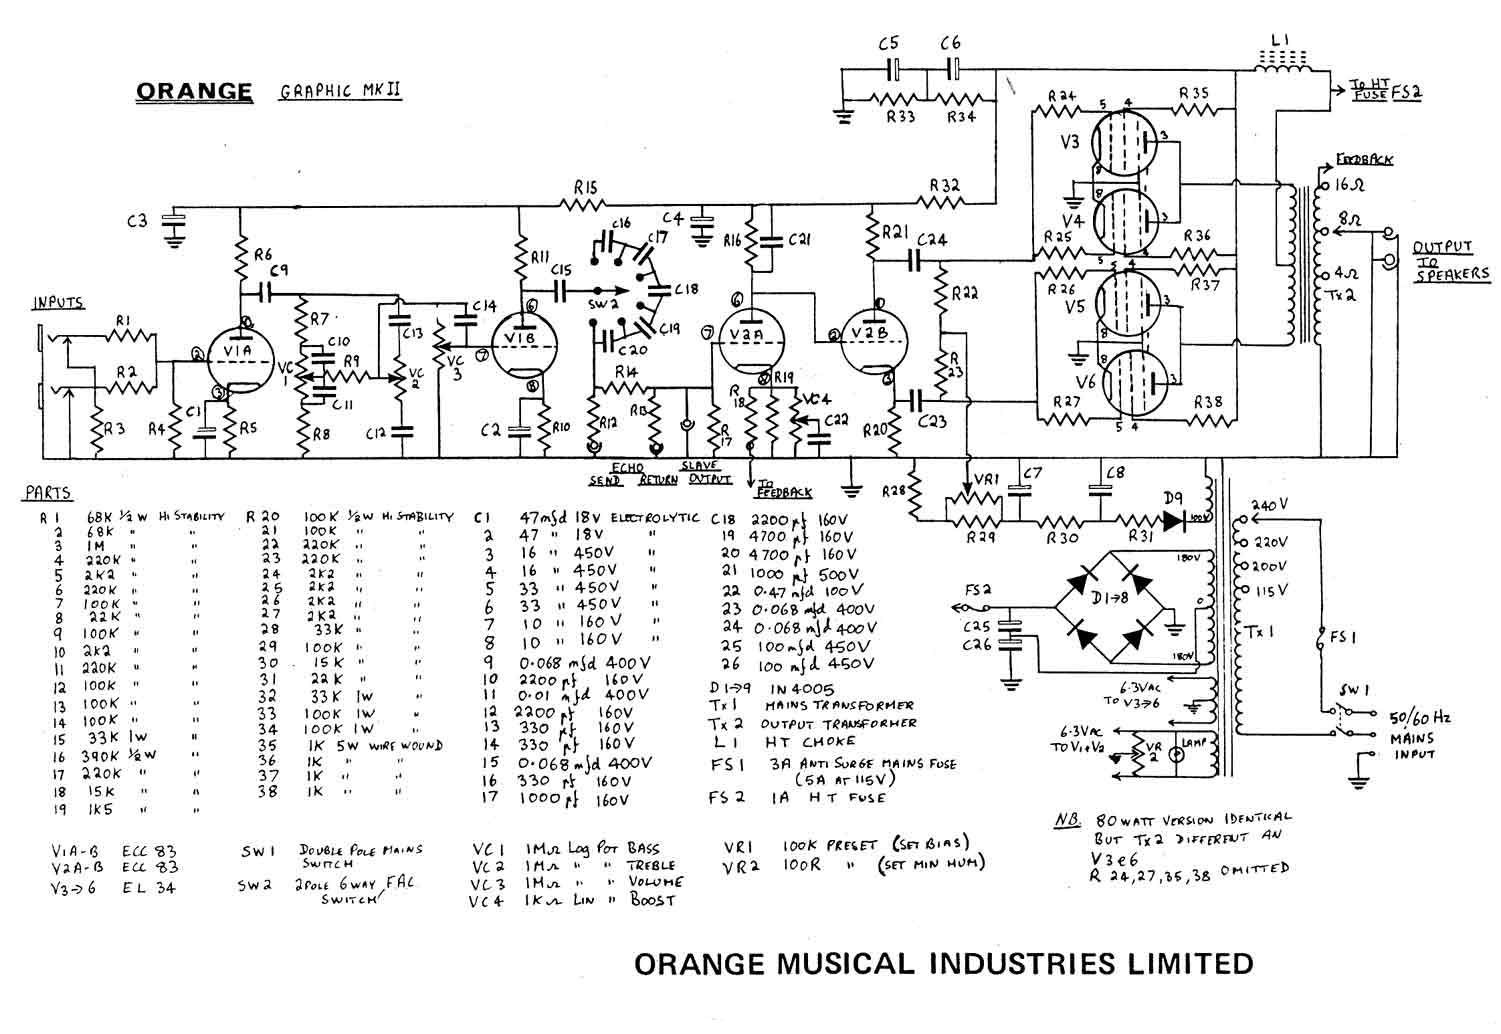 orange_graphic_mkii.pdf